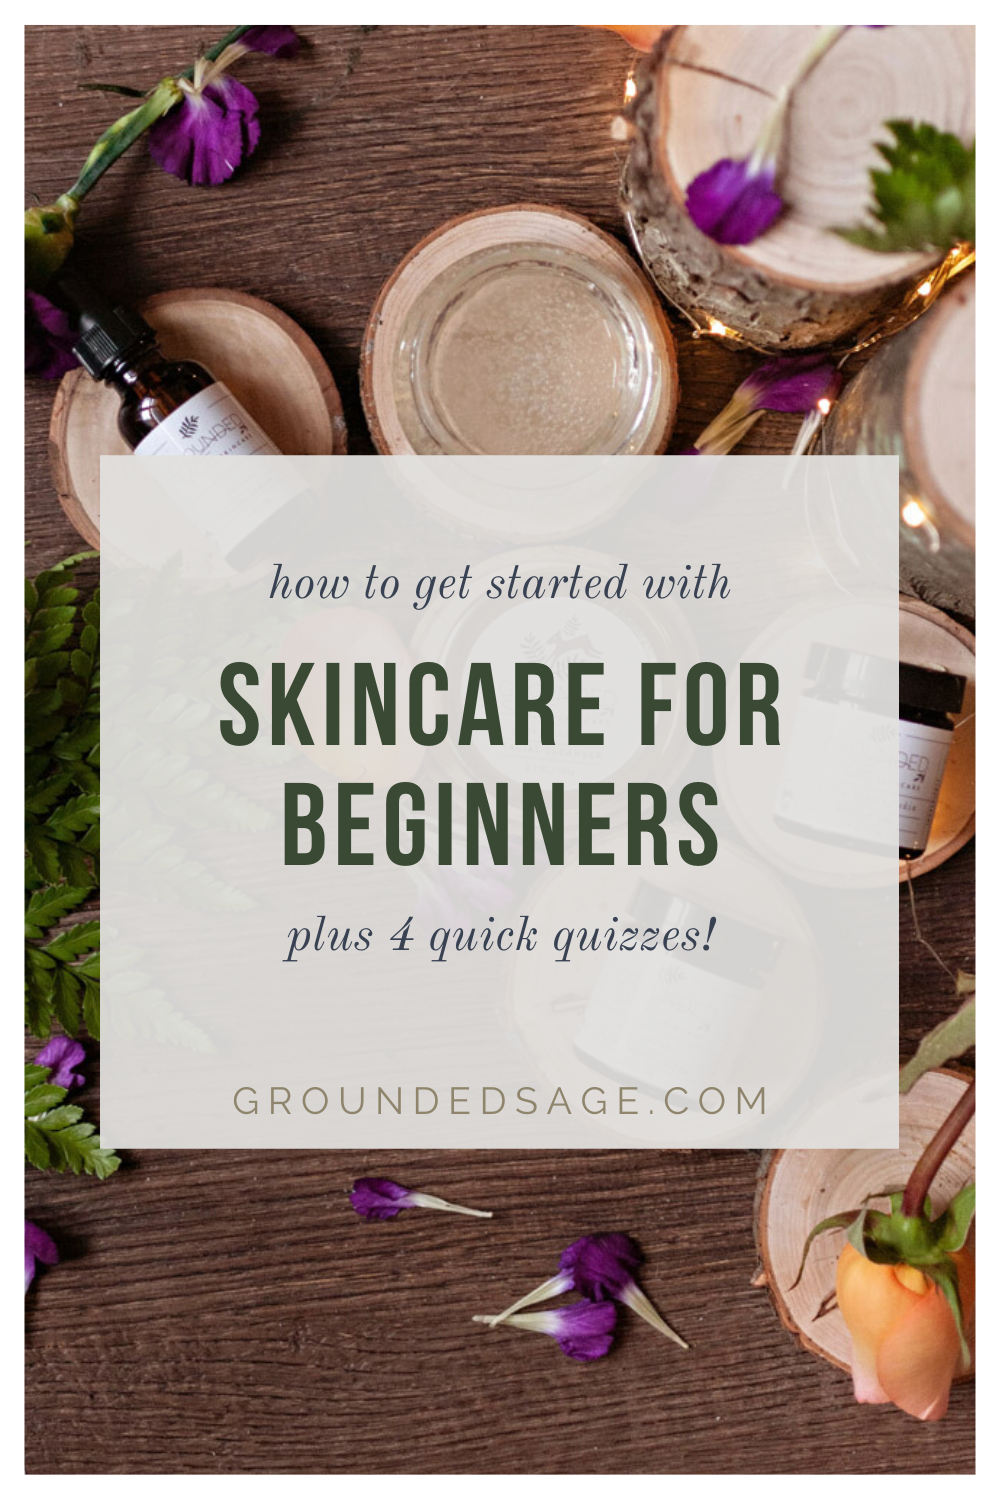 healthy skincare solutions for beginners. All natural routine products for organic face regimen when you're just getting started. How to know where to begin, what steps to take, and what order to swap out your products for cleaner options in when you want to correct sensitive skin, calm acne prone skin, or reduce redness from rosacea. Plus fun beauty quizzes to get you started with your skin type.